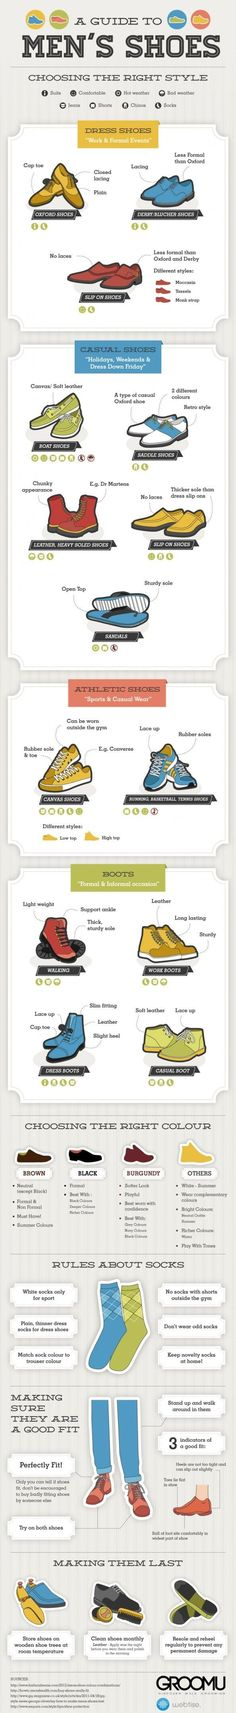 A guide to footwear.